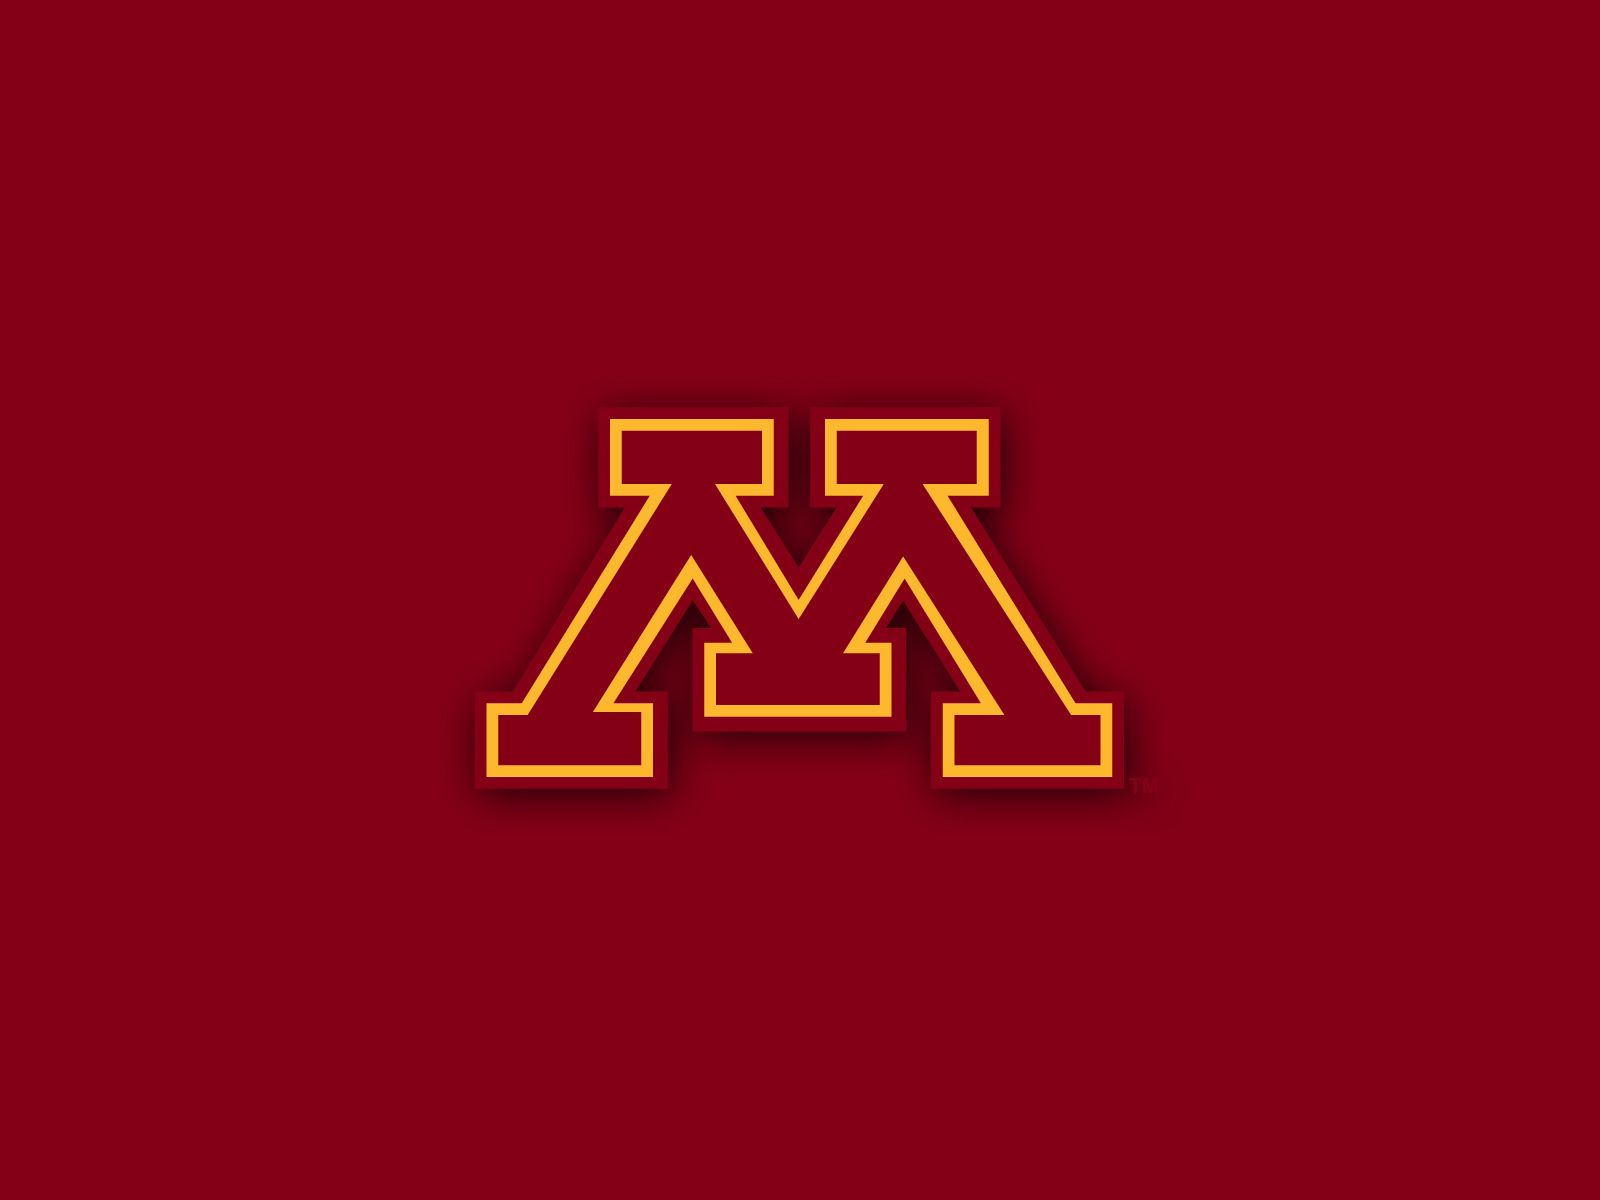 Minnesota Wallpapers - LyhyXX.com